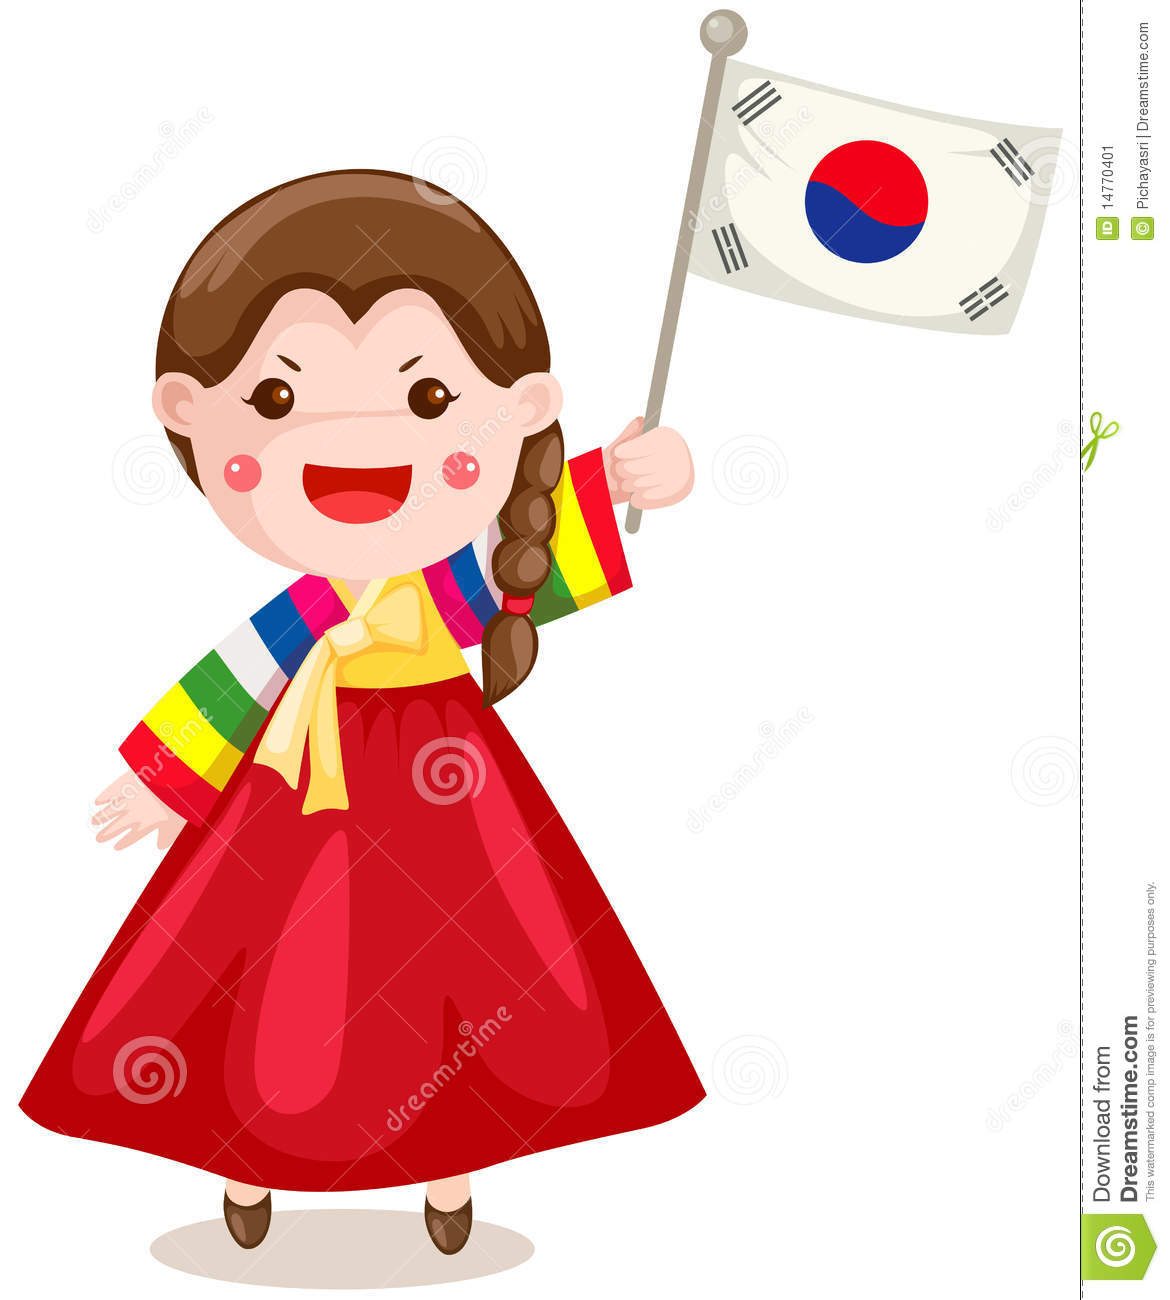 the issue of national identity for the korean people The macedonian-greek dispute has become a core component of each people's national identity,  issue national identity,  korean-like win-win.